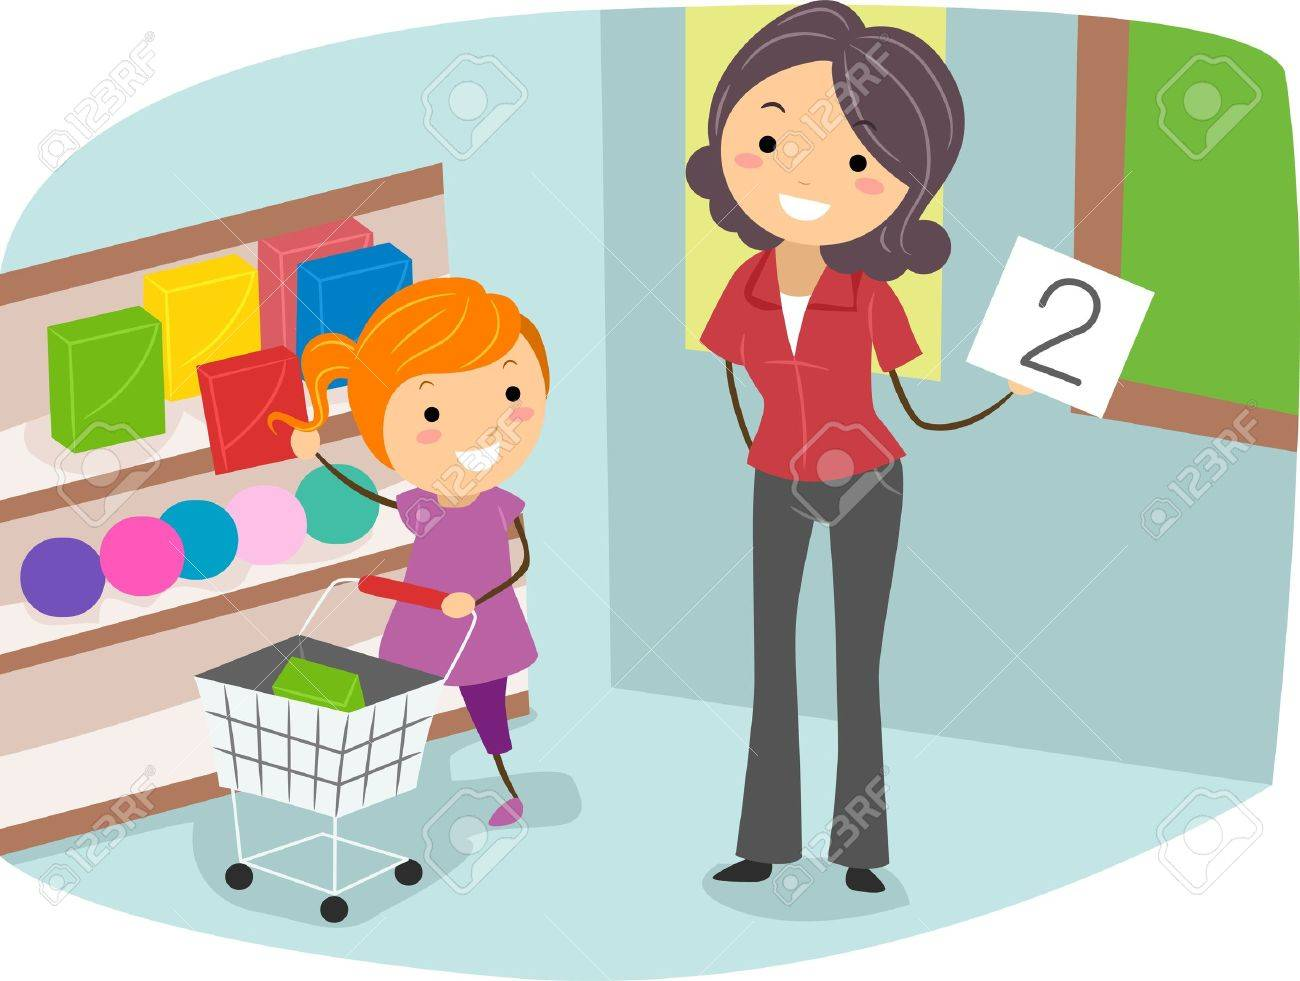 Illustration of a Kid Doing a Counting Exercise Stock Illustration - 10192135